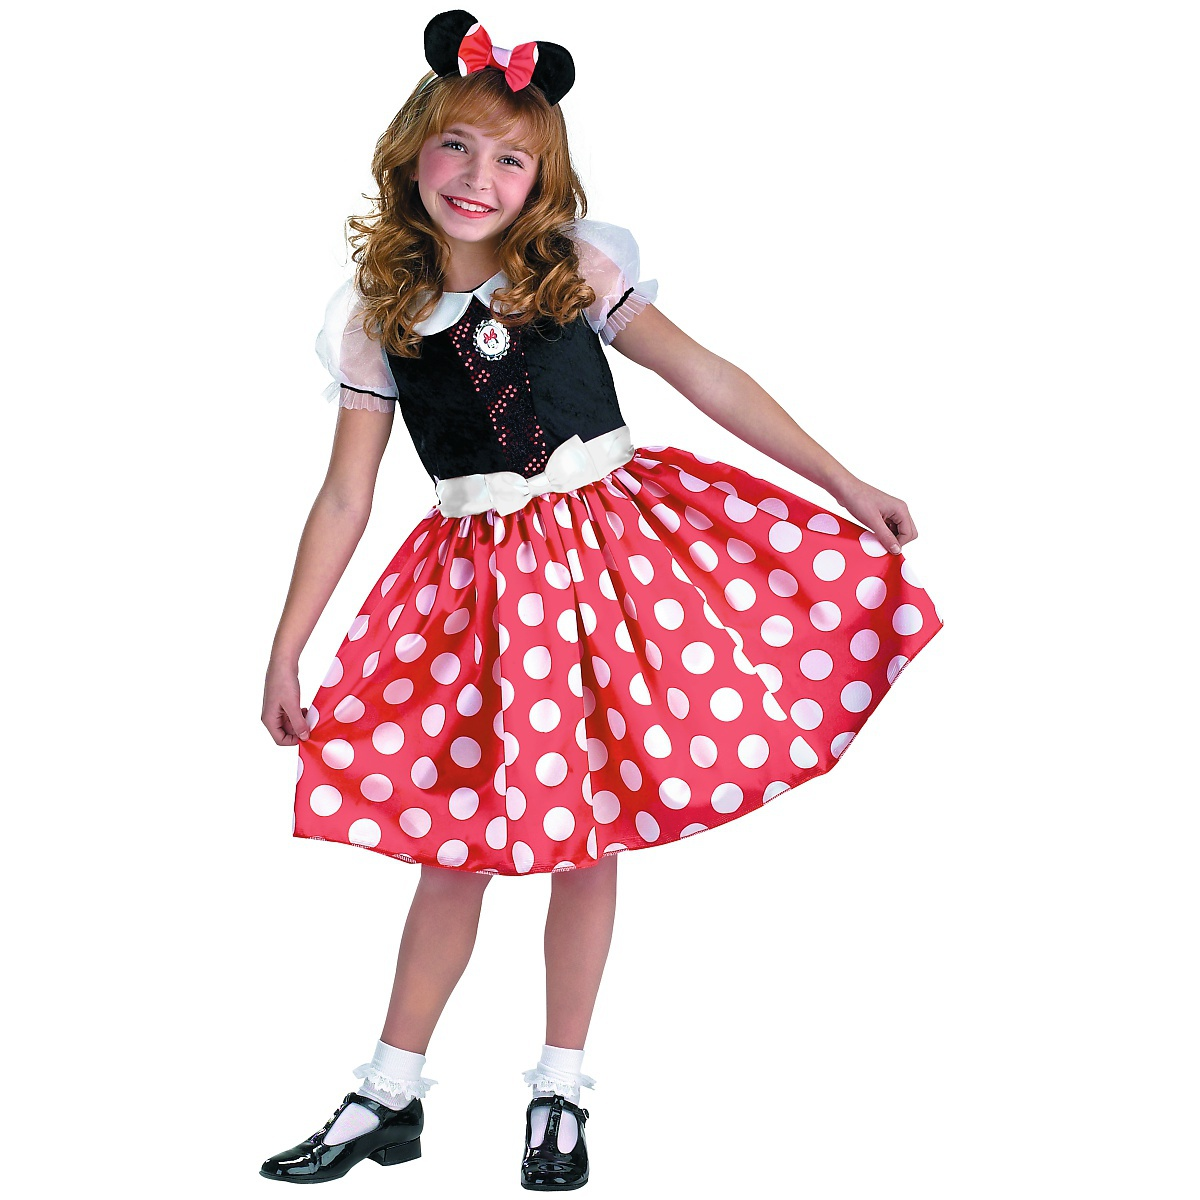 Disguise Minnie Mouse Costume Kids & Toddler Disney Outfit Halloween Fancy Dress